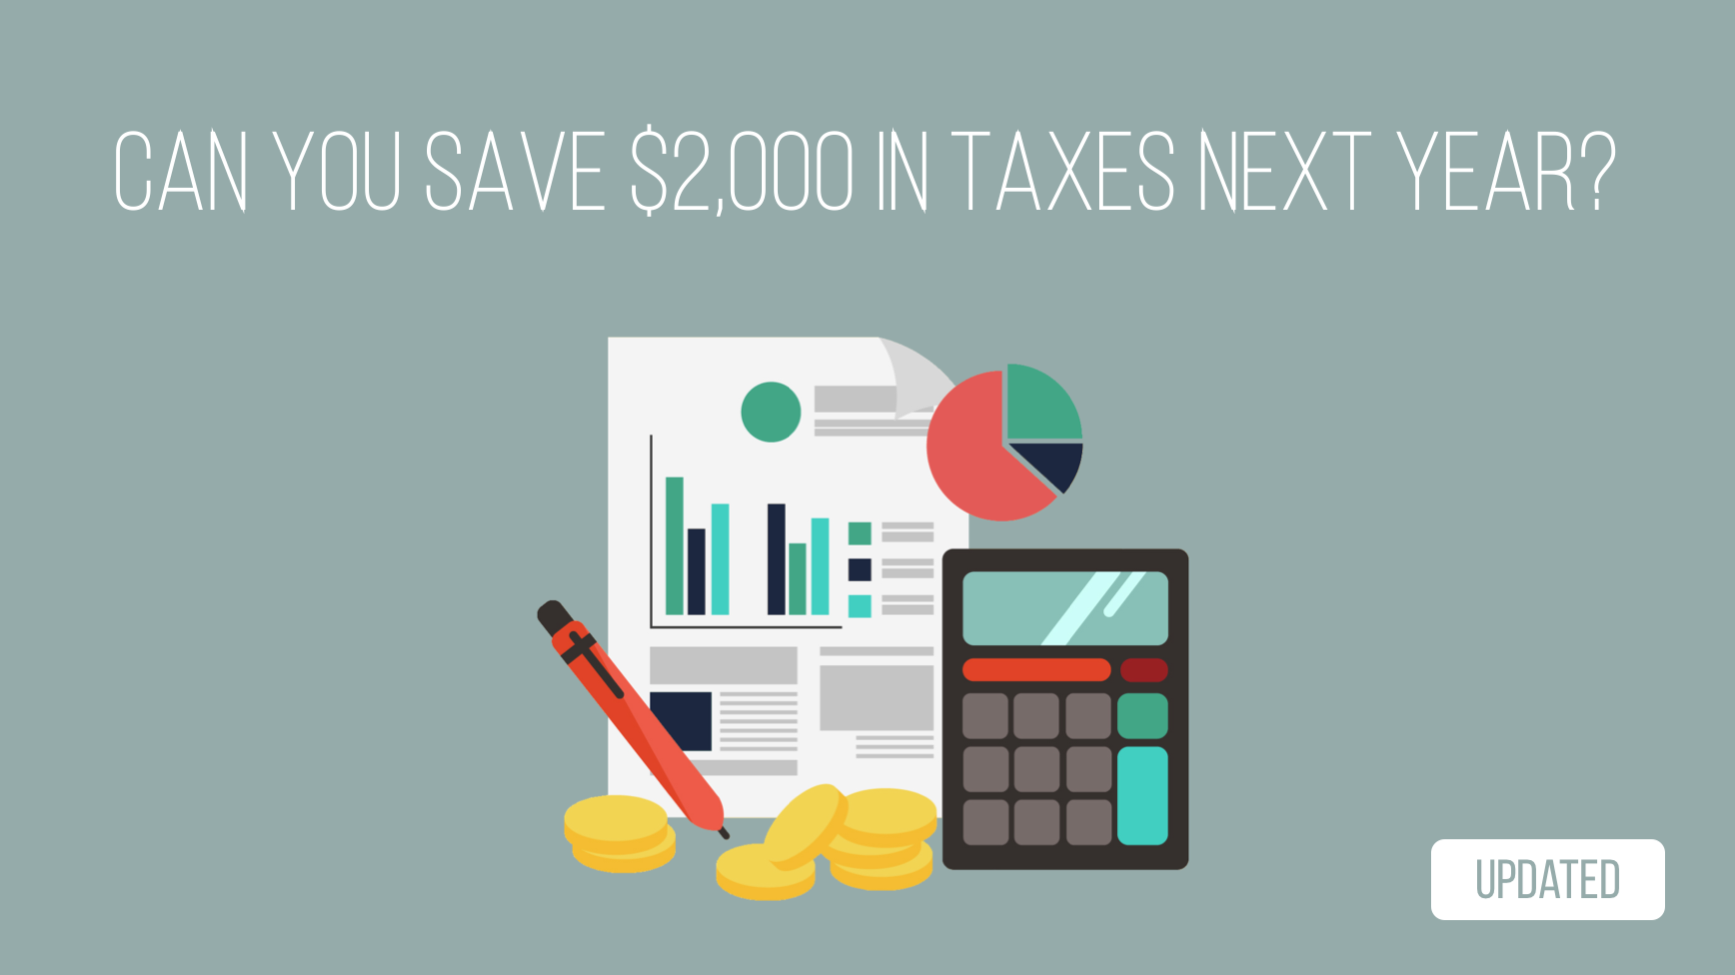 Can you save $2,000 in taxes next year?